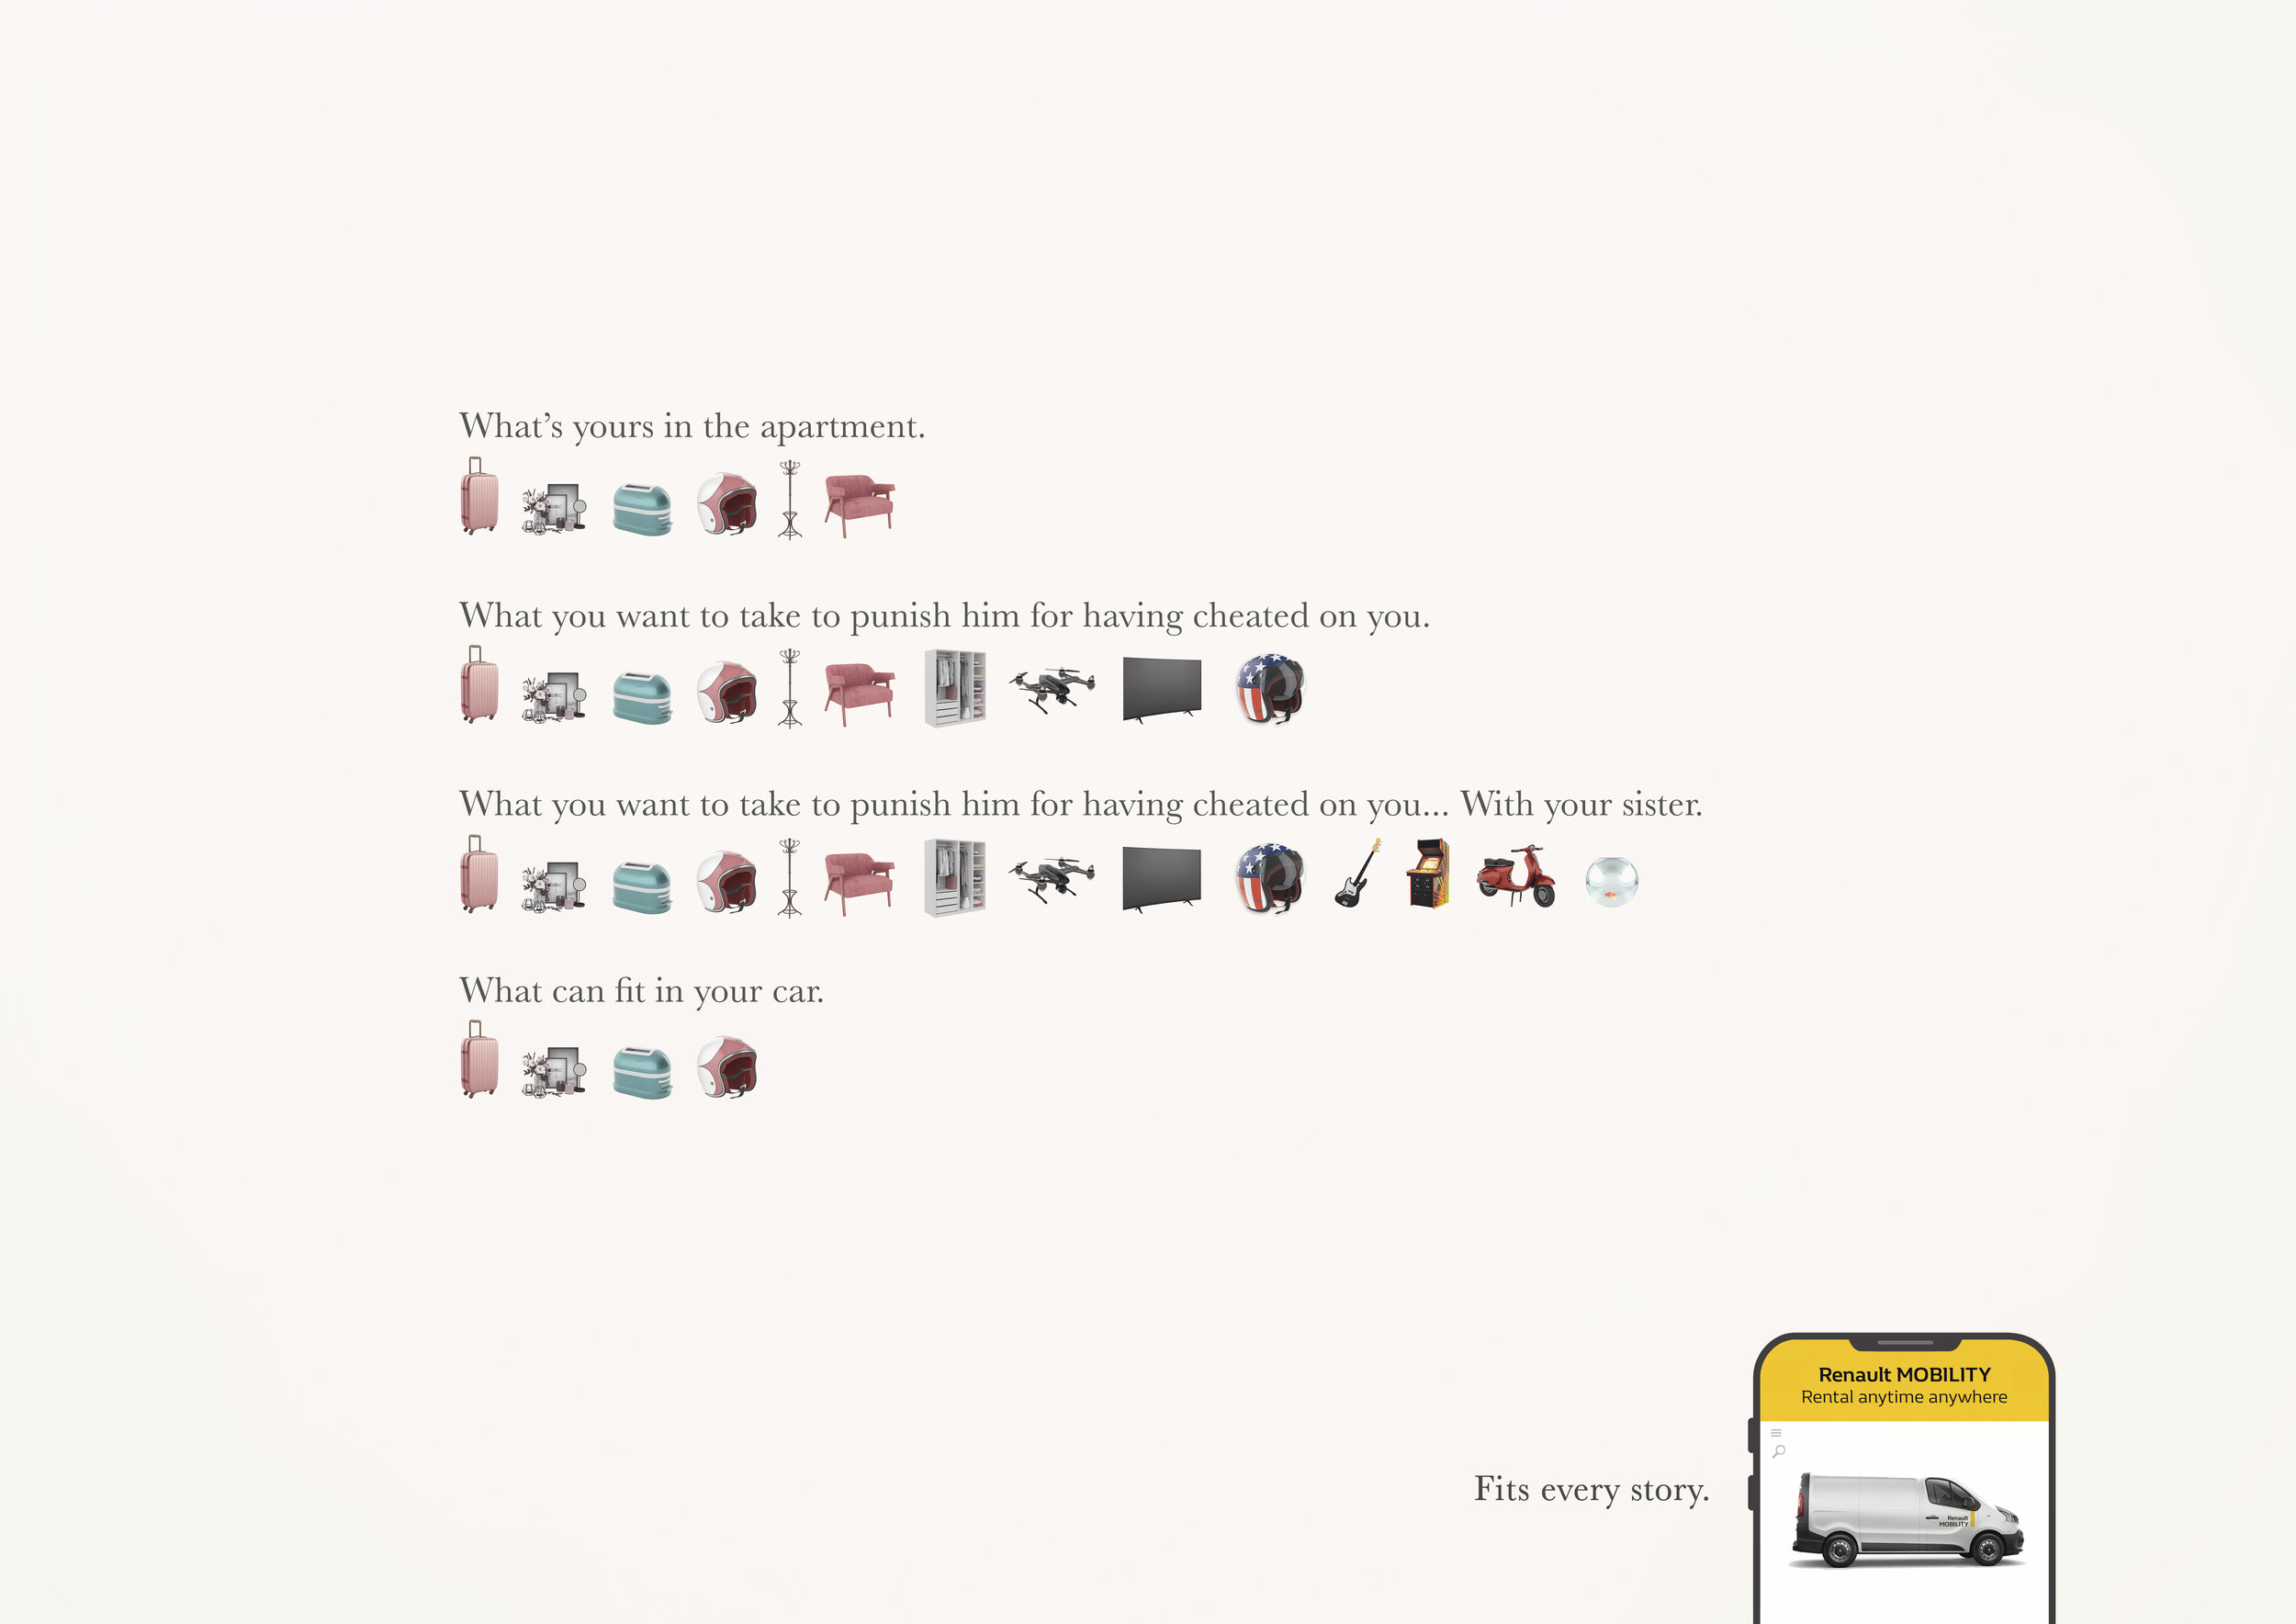 RENAULT MOBILITY - FITS EVERY STORY - DIVORCE.jpg